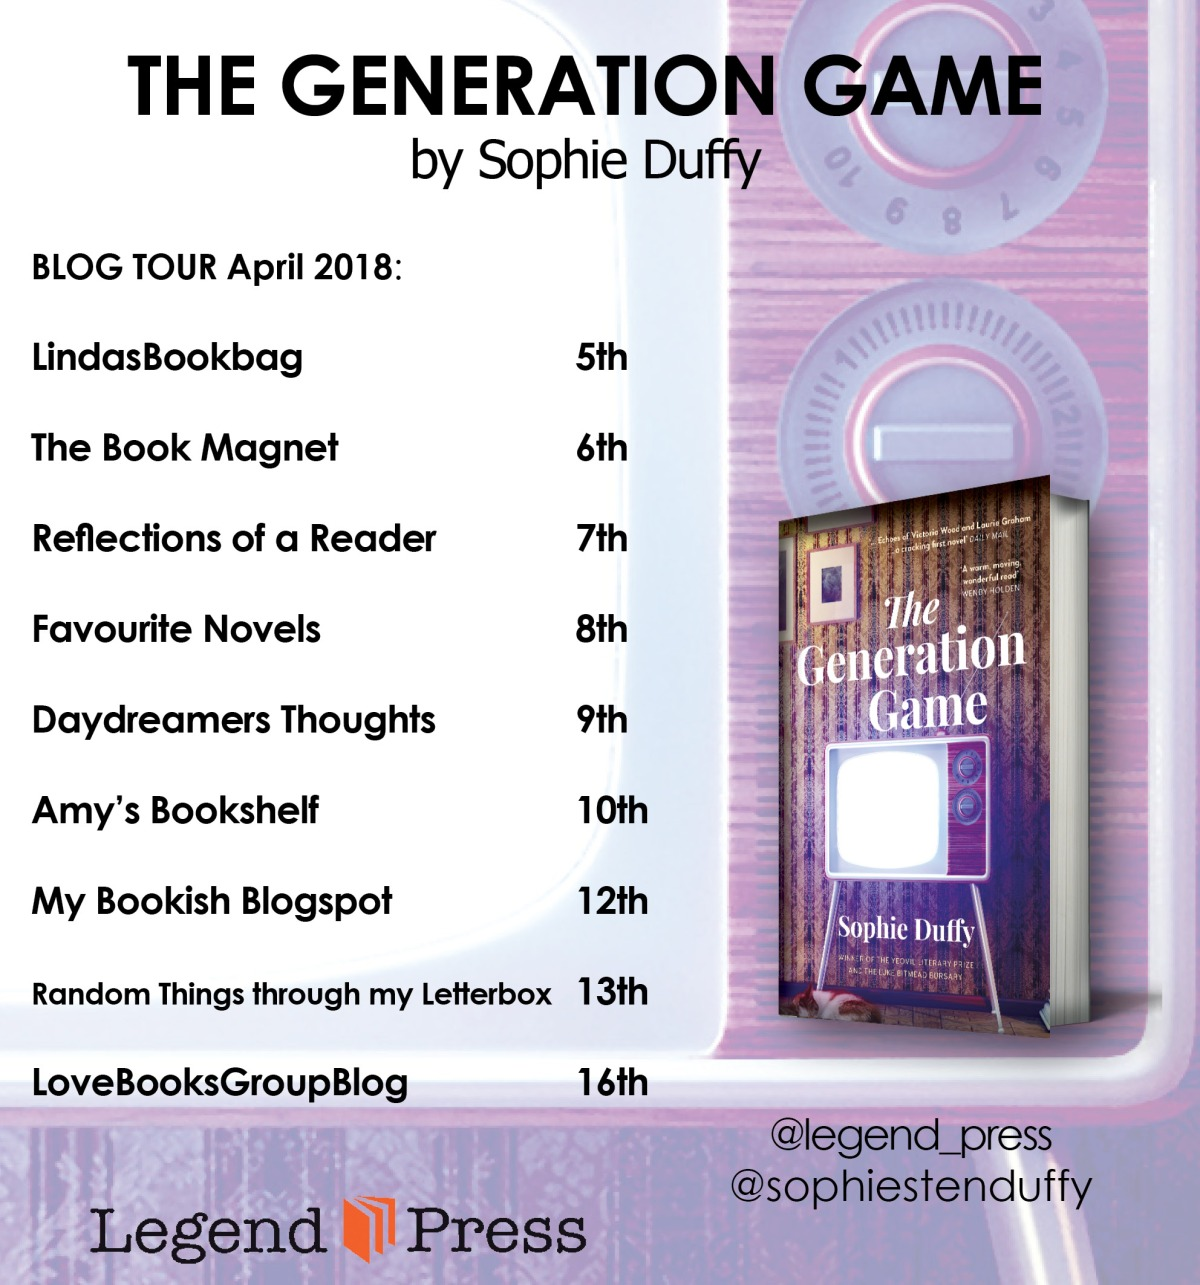 #Blogtour The Generation Game by Sophie Duffy   @sophiestenduffy @LegendPress